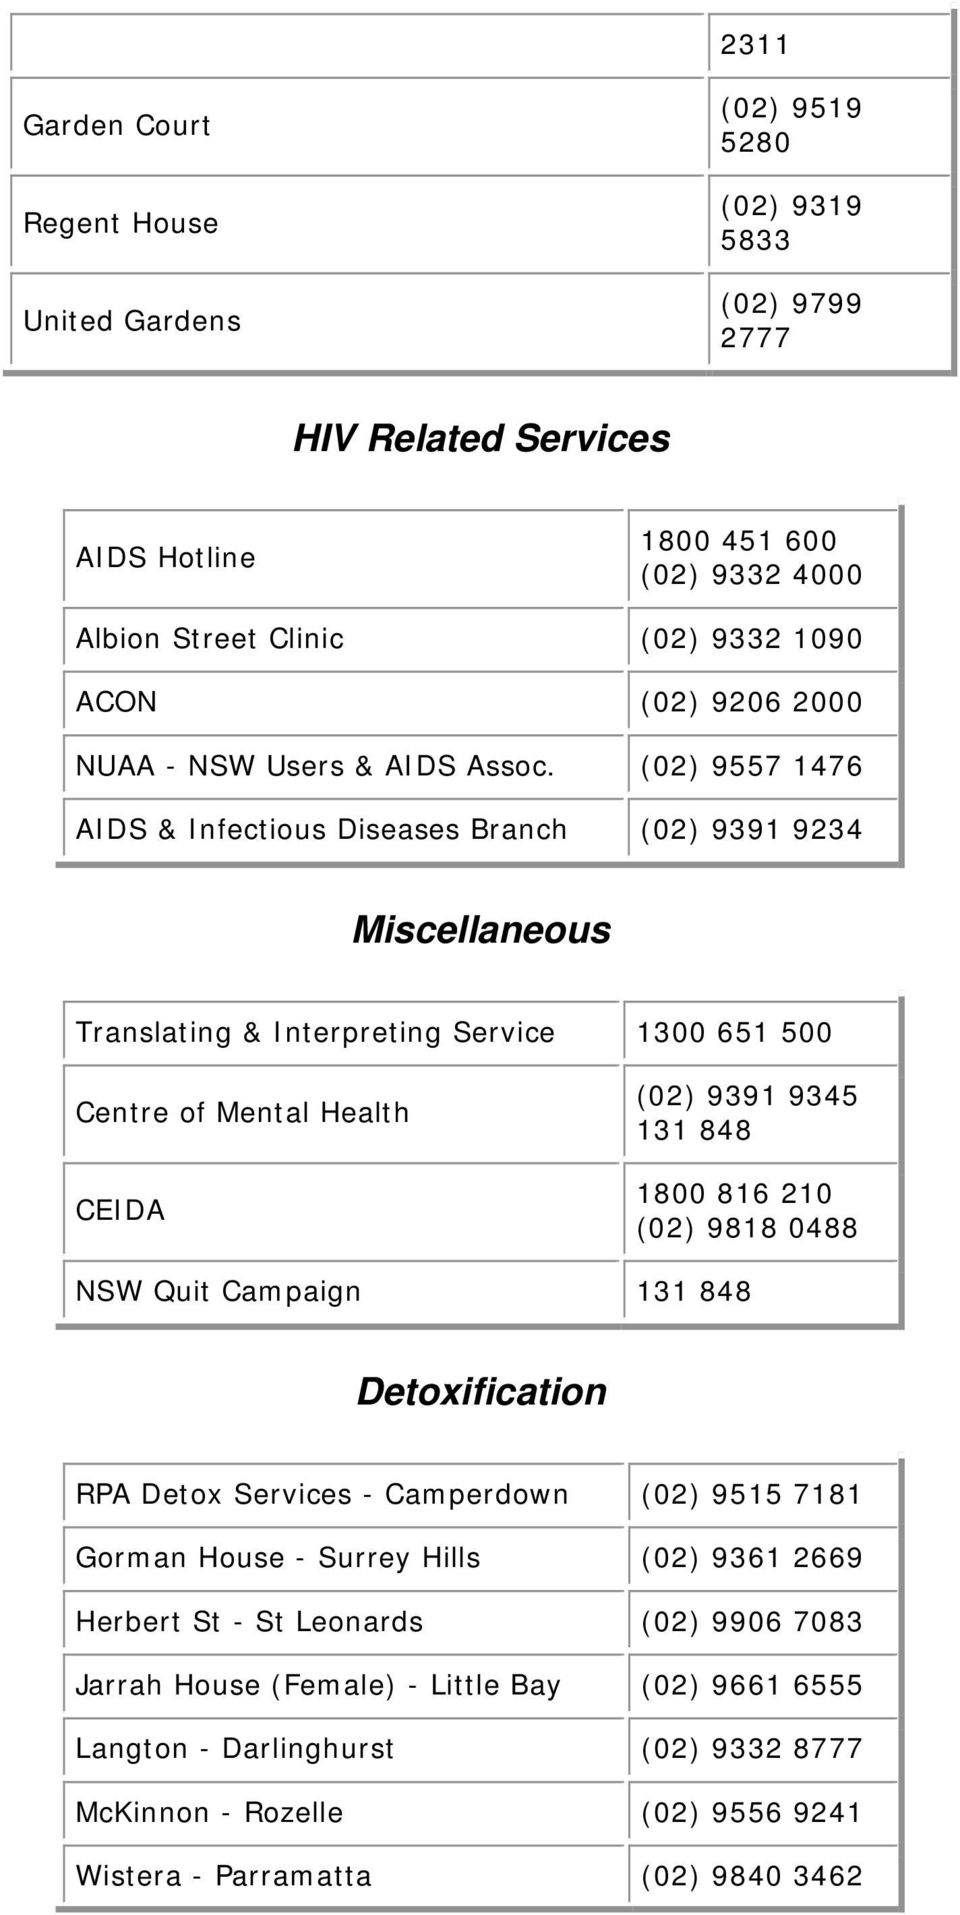 (02) 9557 1476 AIDS & Infectious Diseases Branch (02) 9391 9234 Miscellaneous Translating & Interpreting Service 1300 651 500 Centre of Mental Health CEIDA (02) 9391 9345 131 848 1800 816 210